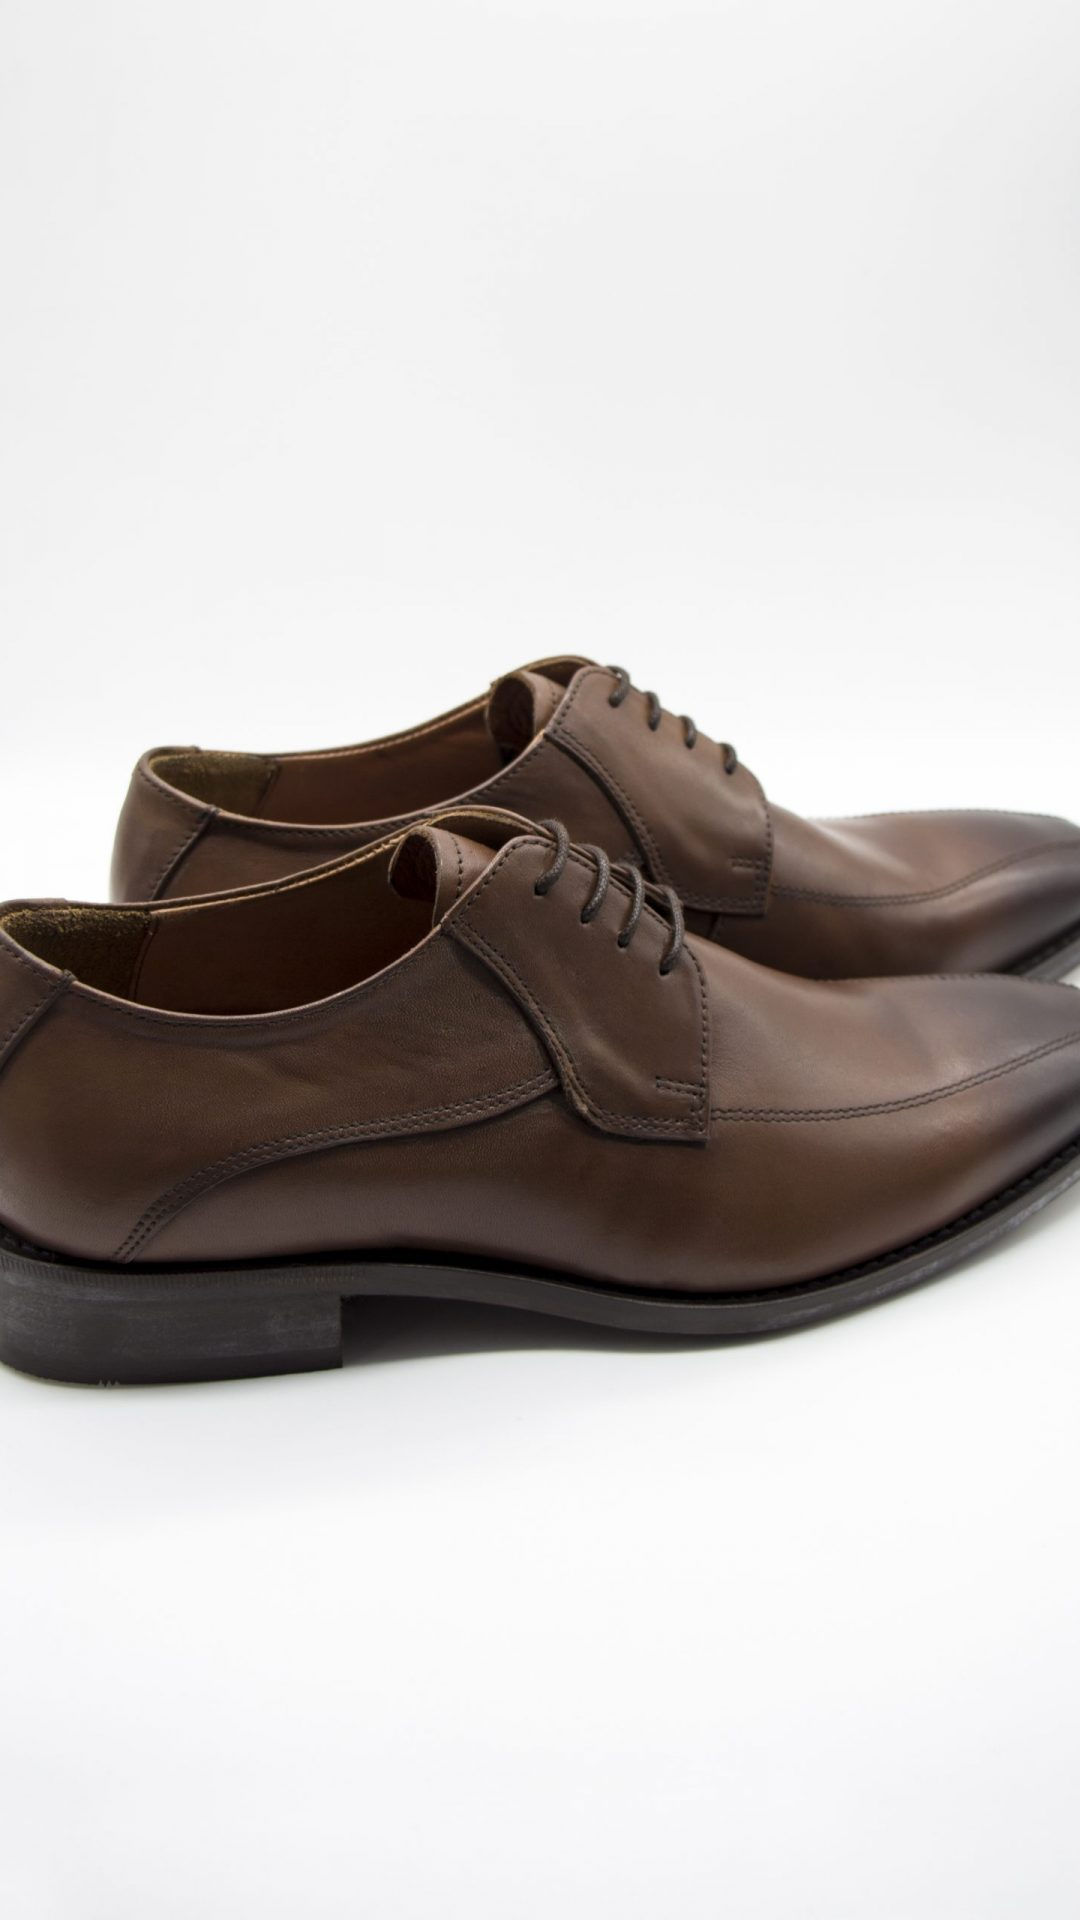 SHOES-FM-1829-S20 (BROWN)